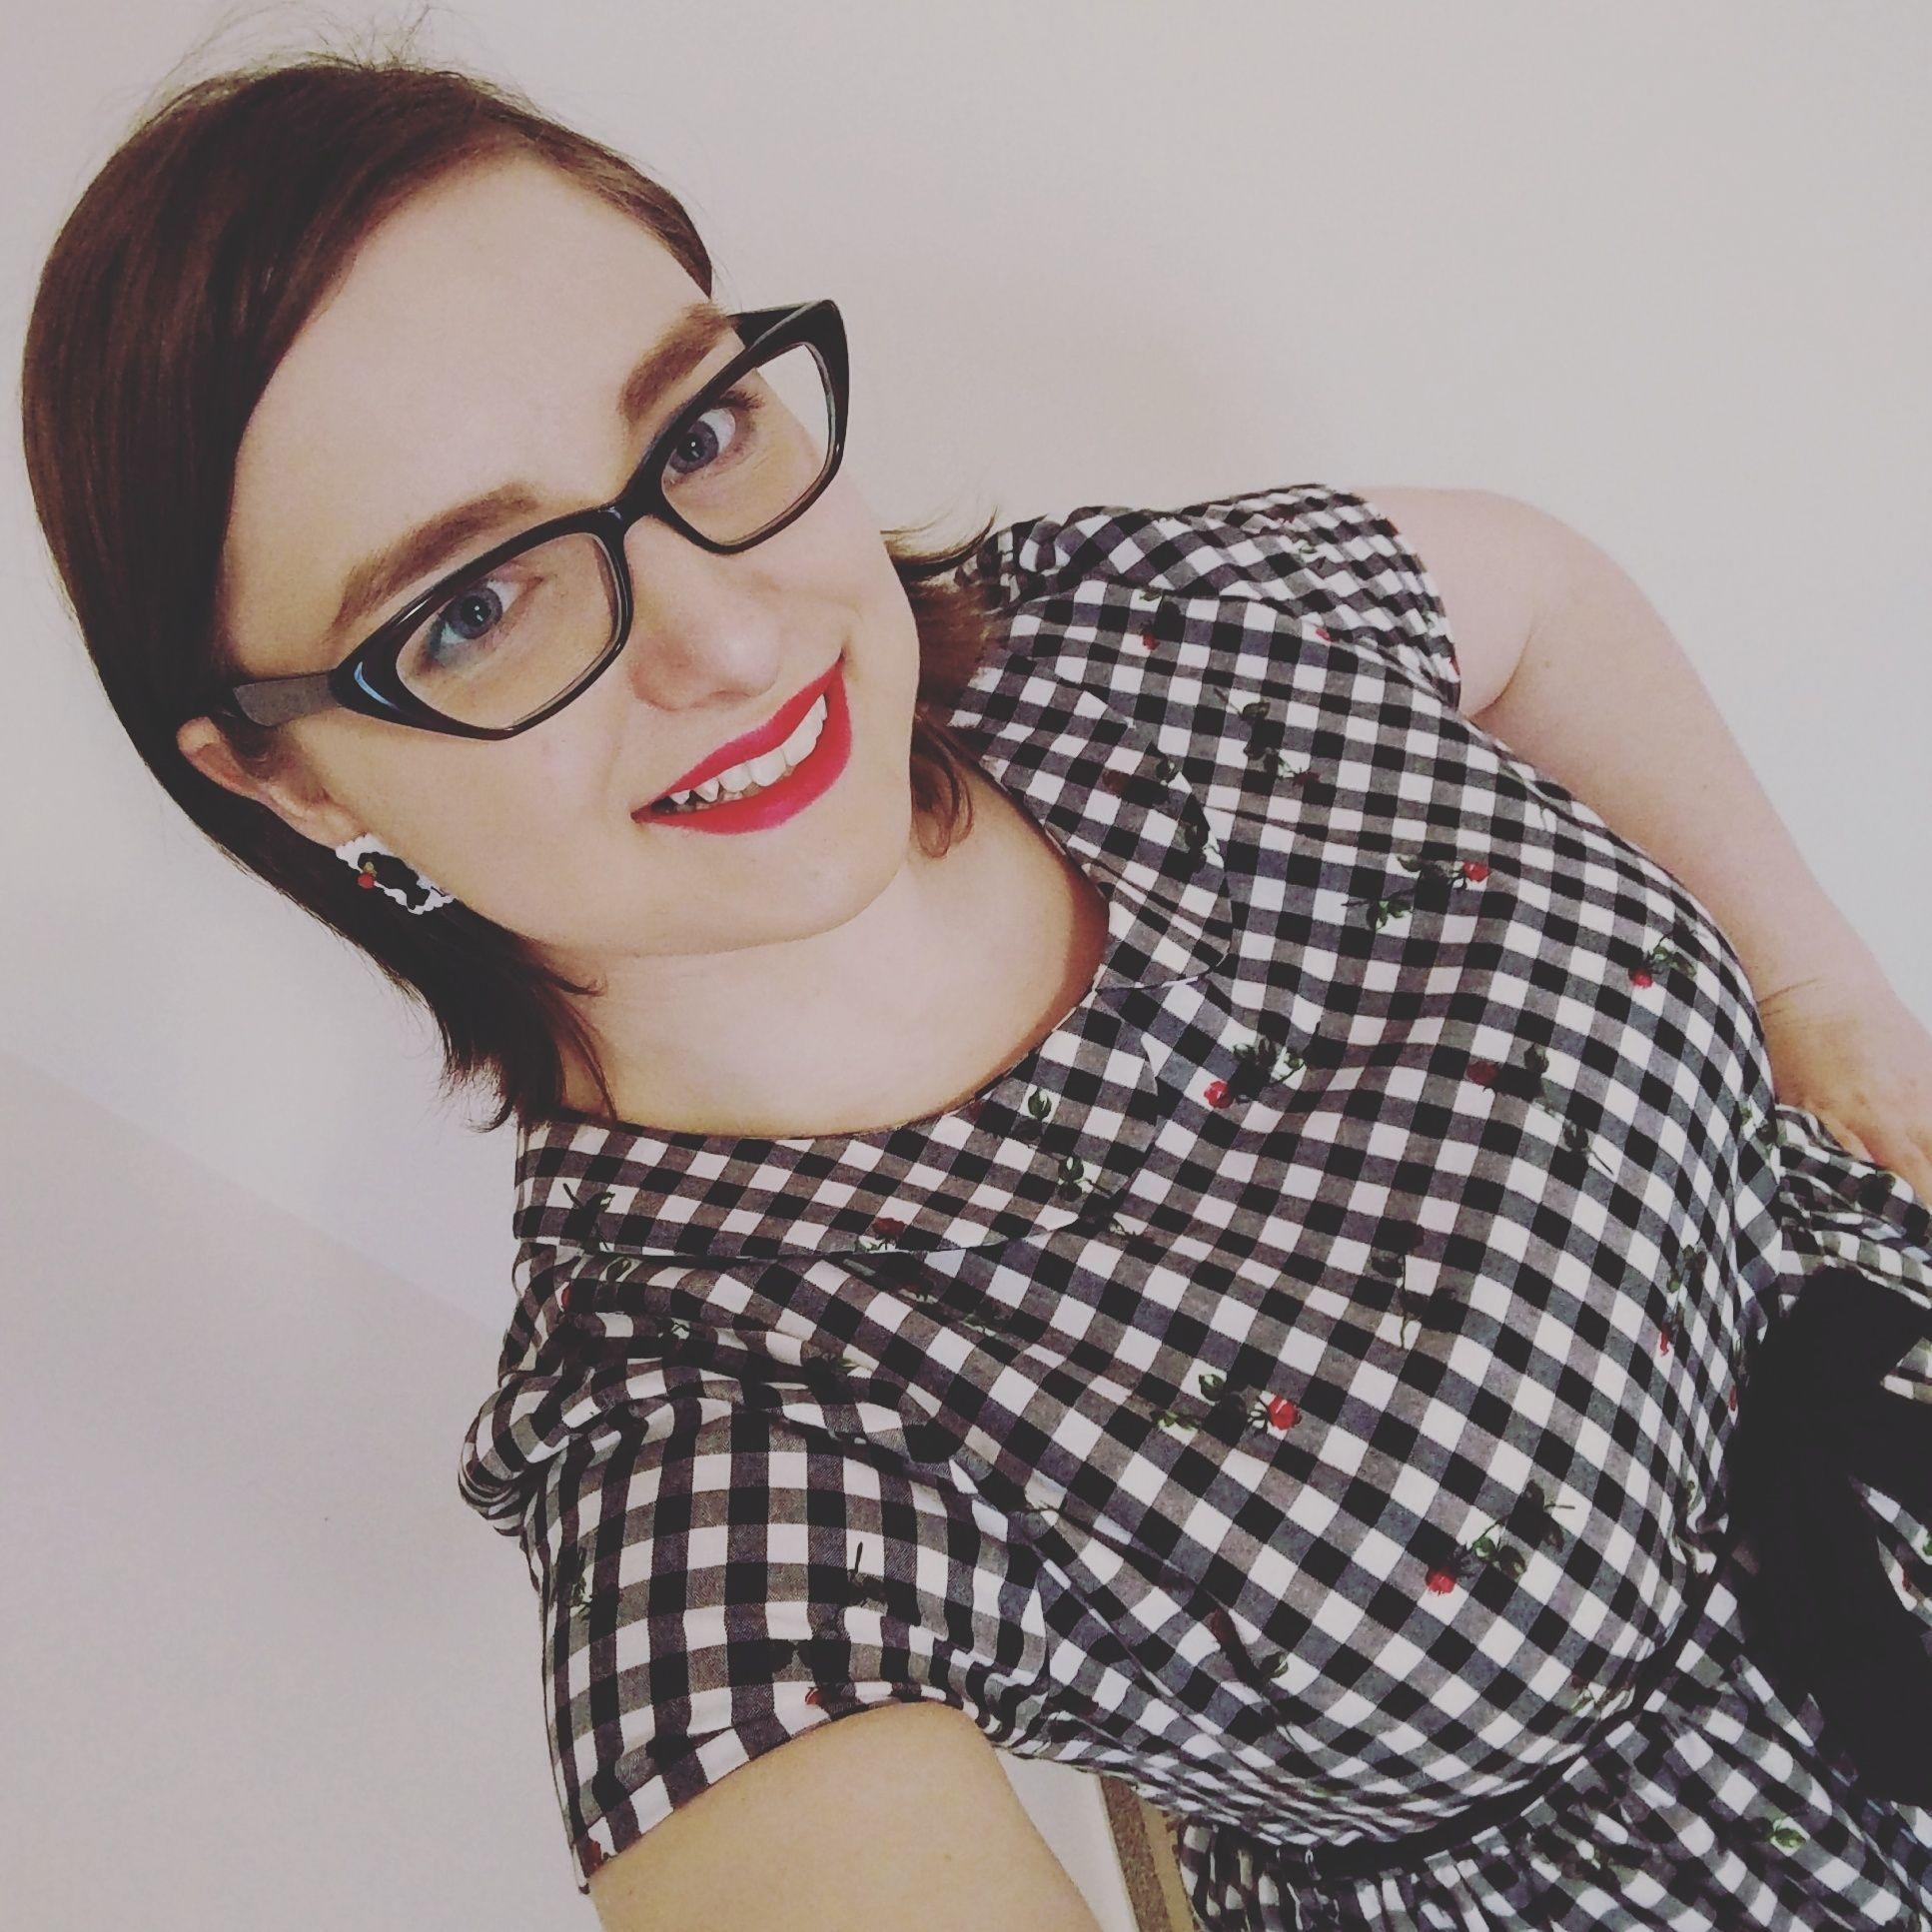 Asexual dating in Melbourne